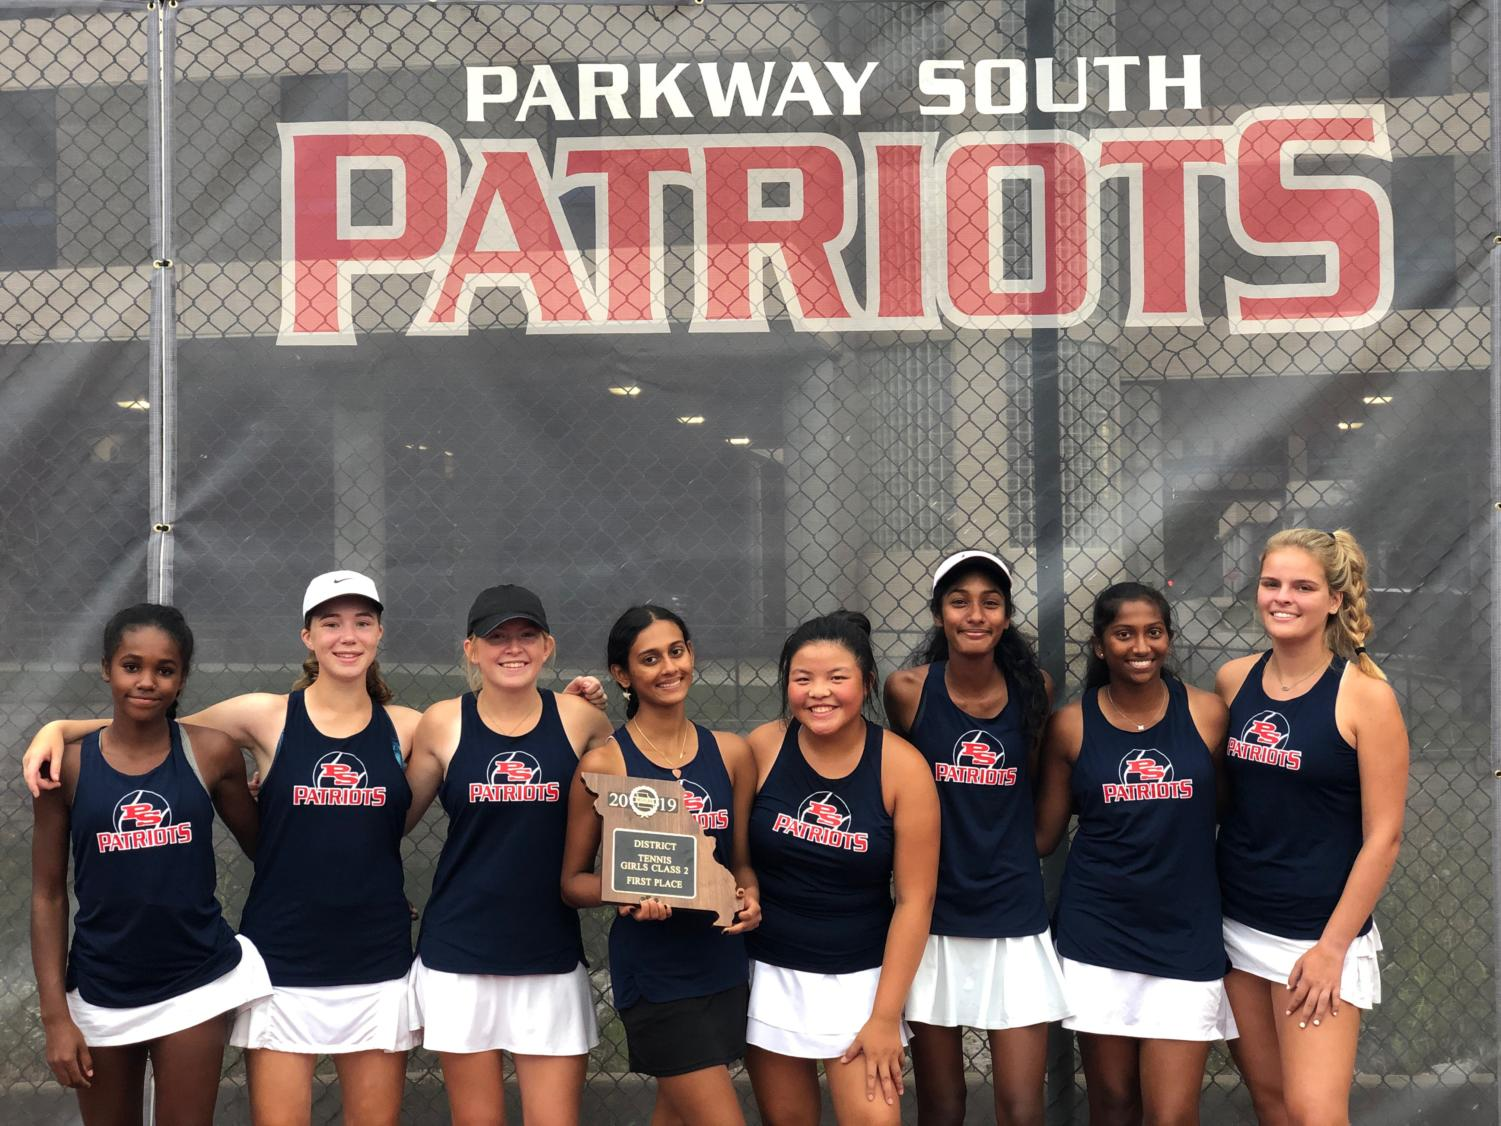 Members of the varsity girls tennis team hold their trophy for winning the district tournament.